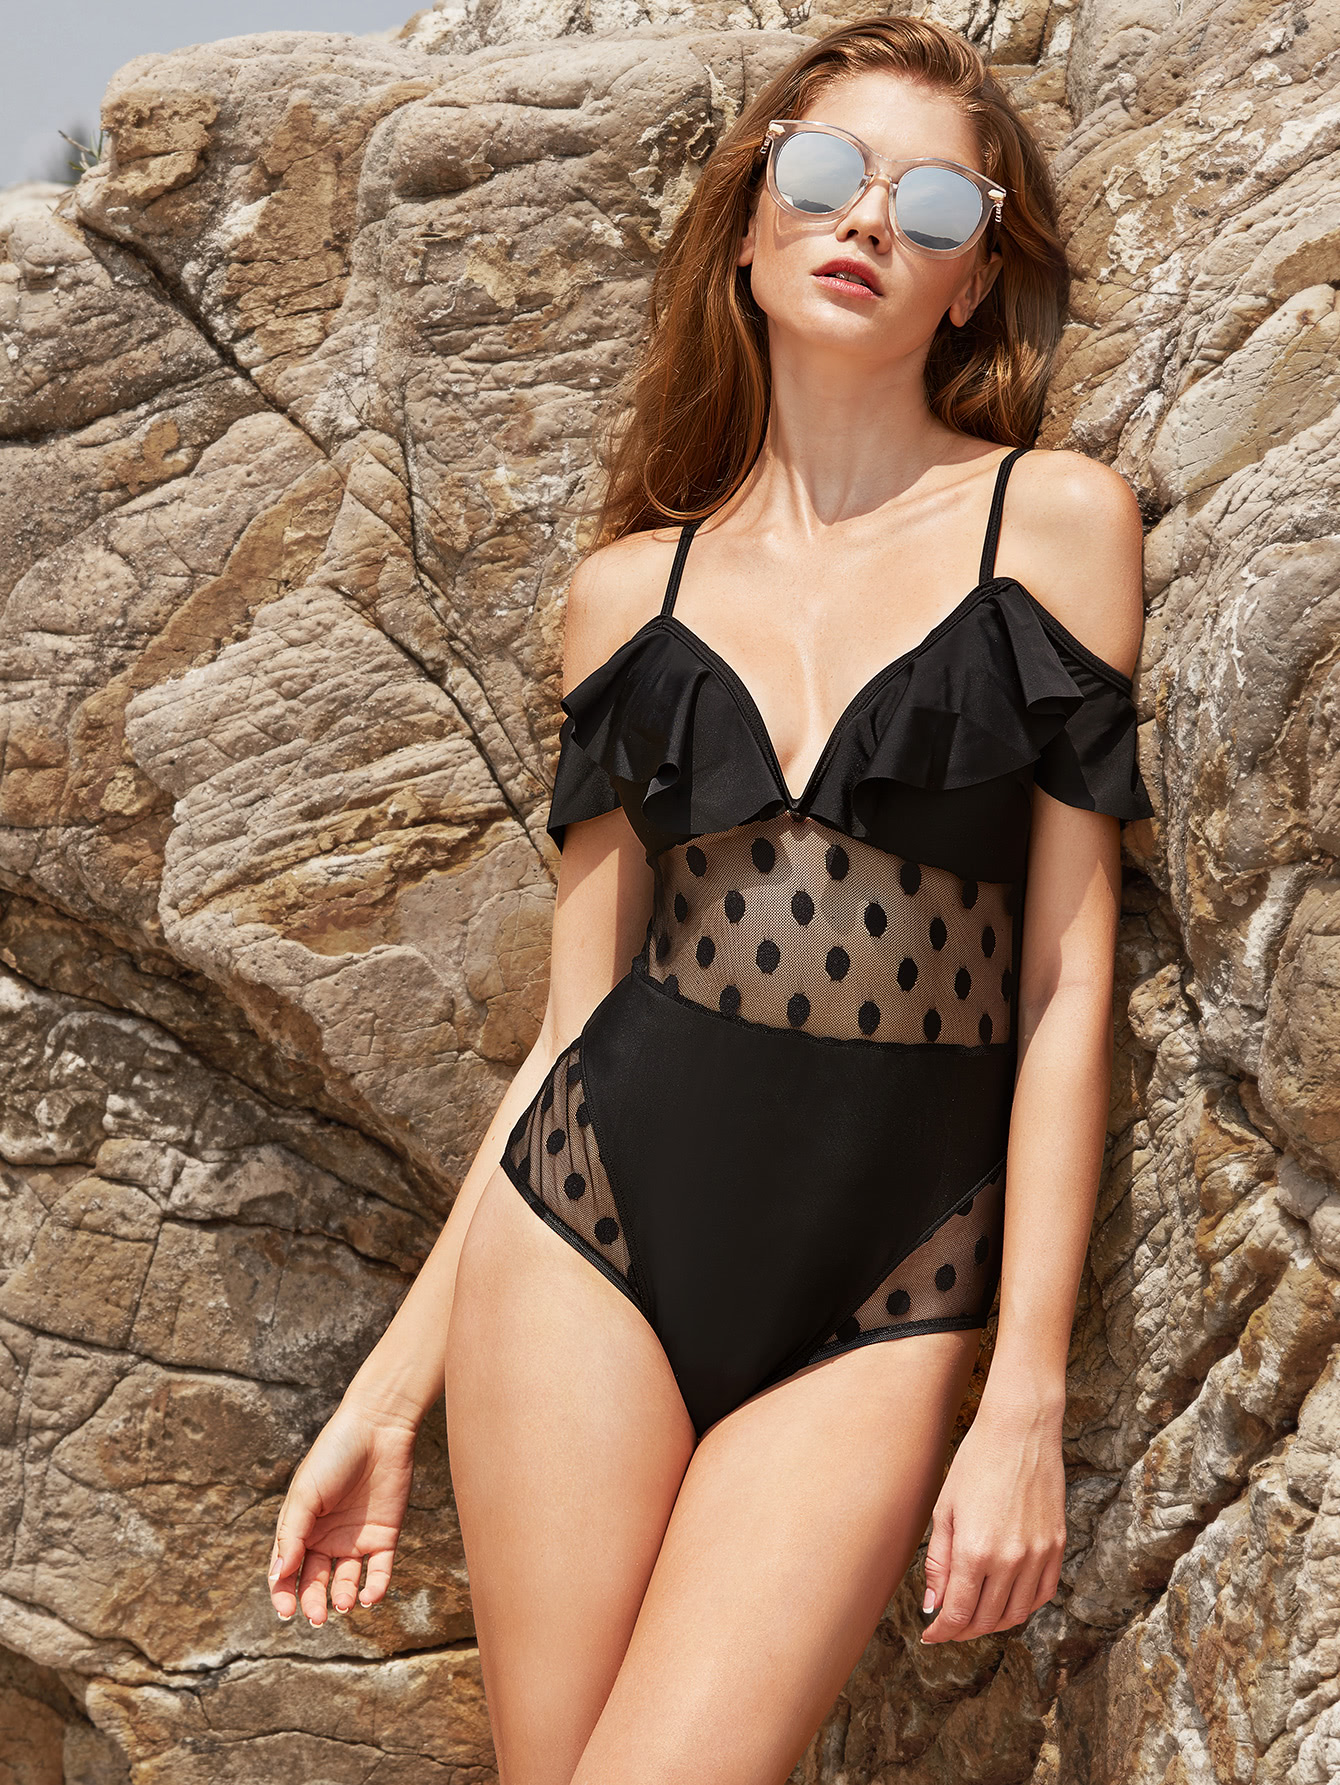 http://www.shein.com/Black-Polka-Dot-Mesh-Design-Ruffle-One-Piece-Swimwear-p-344229-cat-1866.html?aff_id=8630